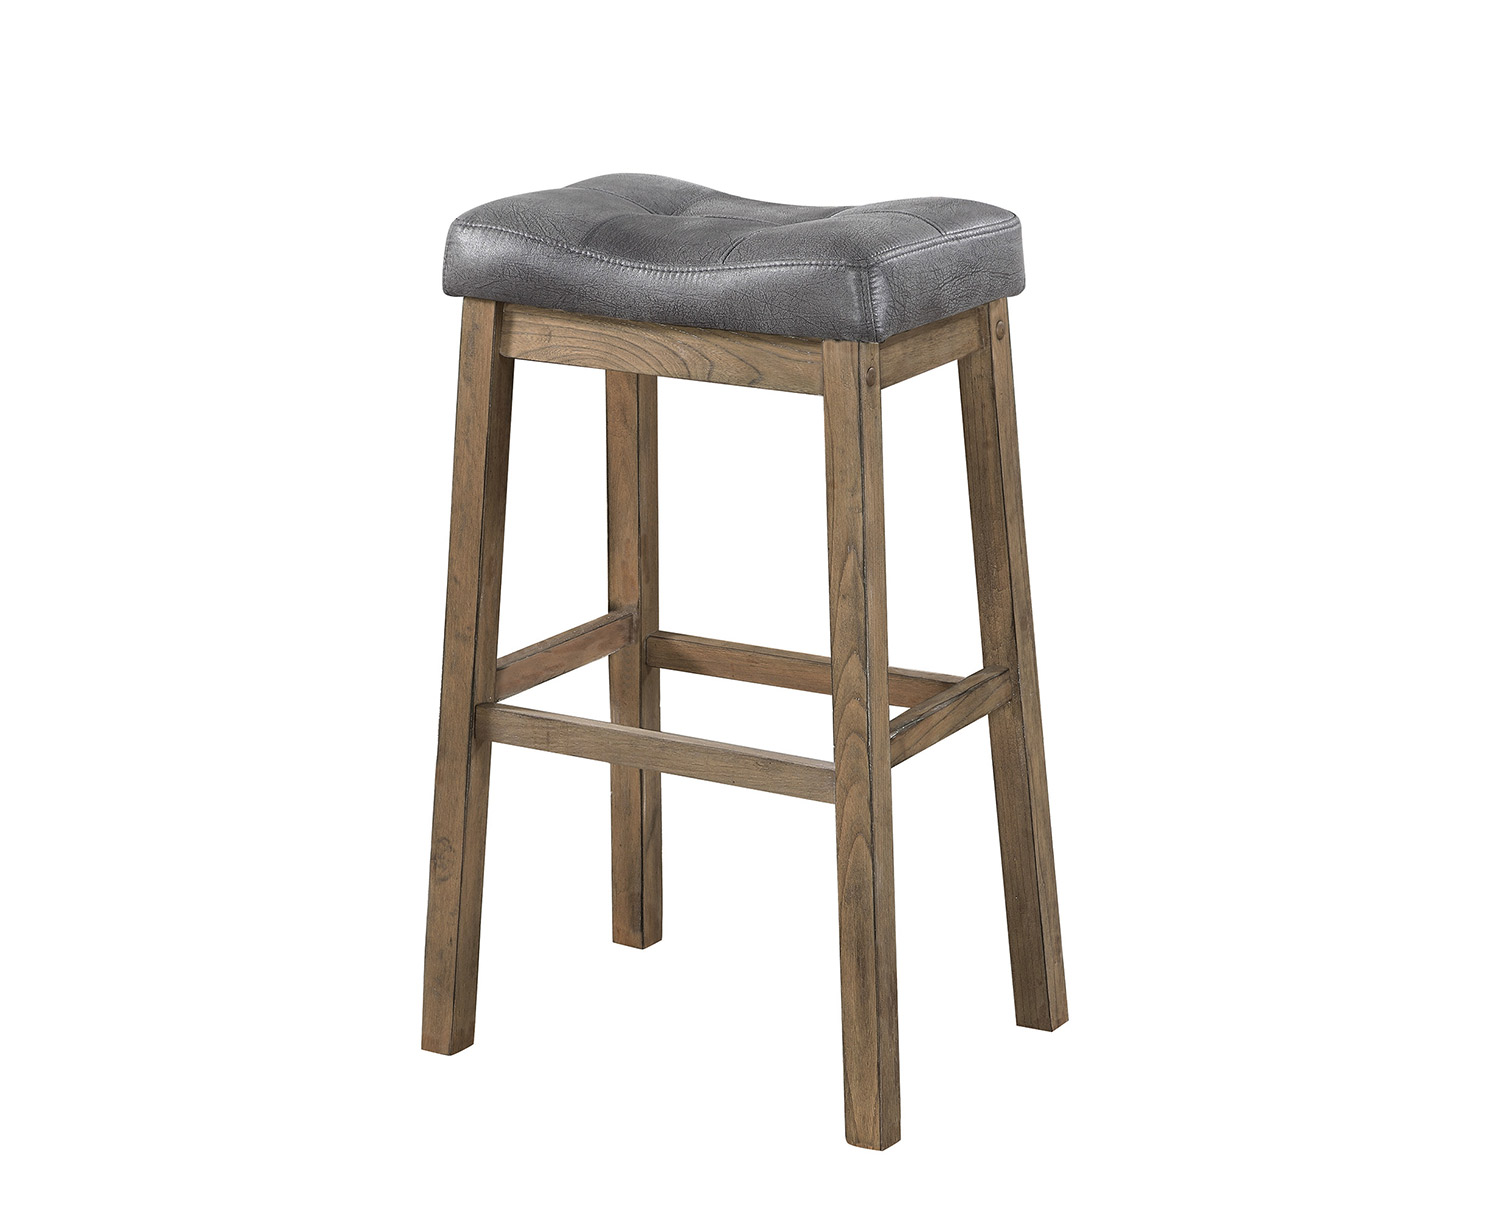 Coaster 121520 Bar Stool - Brown/Driftwood